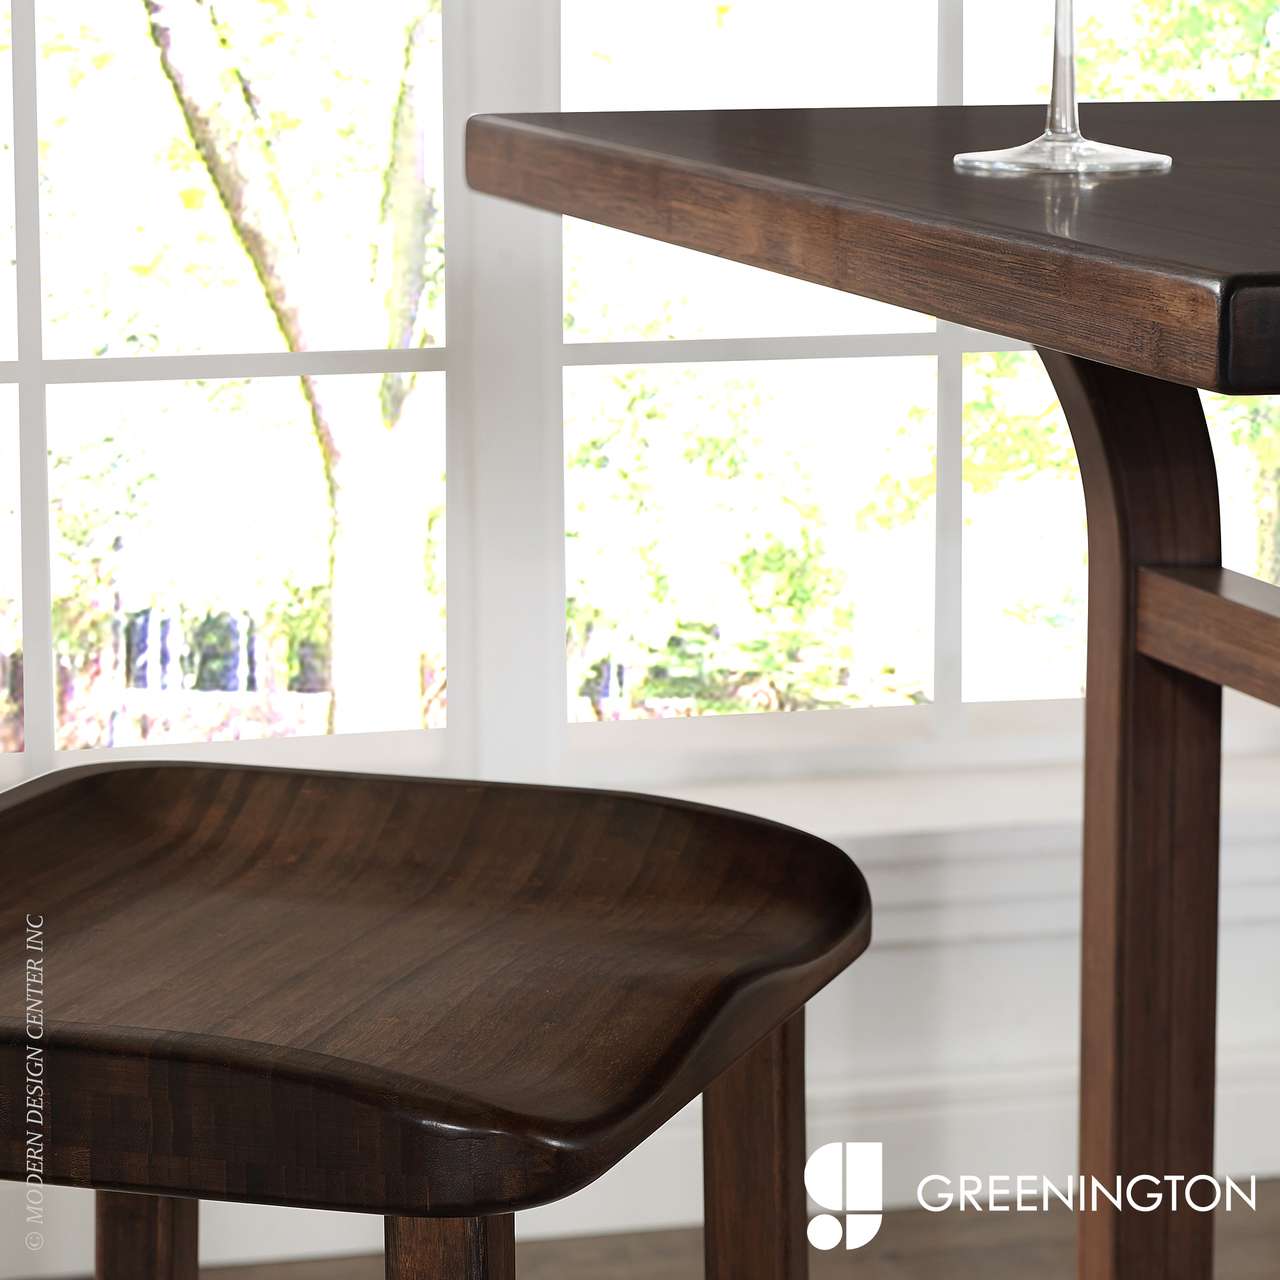 100% Original Greenington Bamboo Furniture. Made In USA